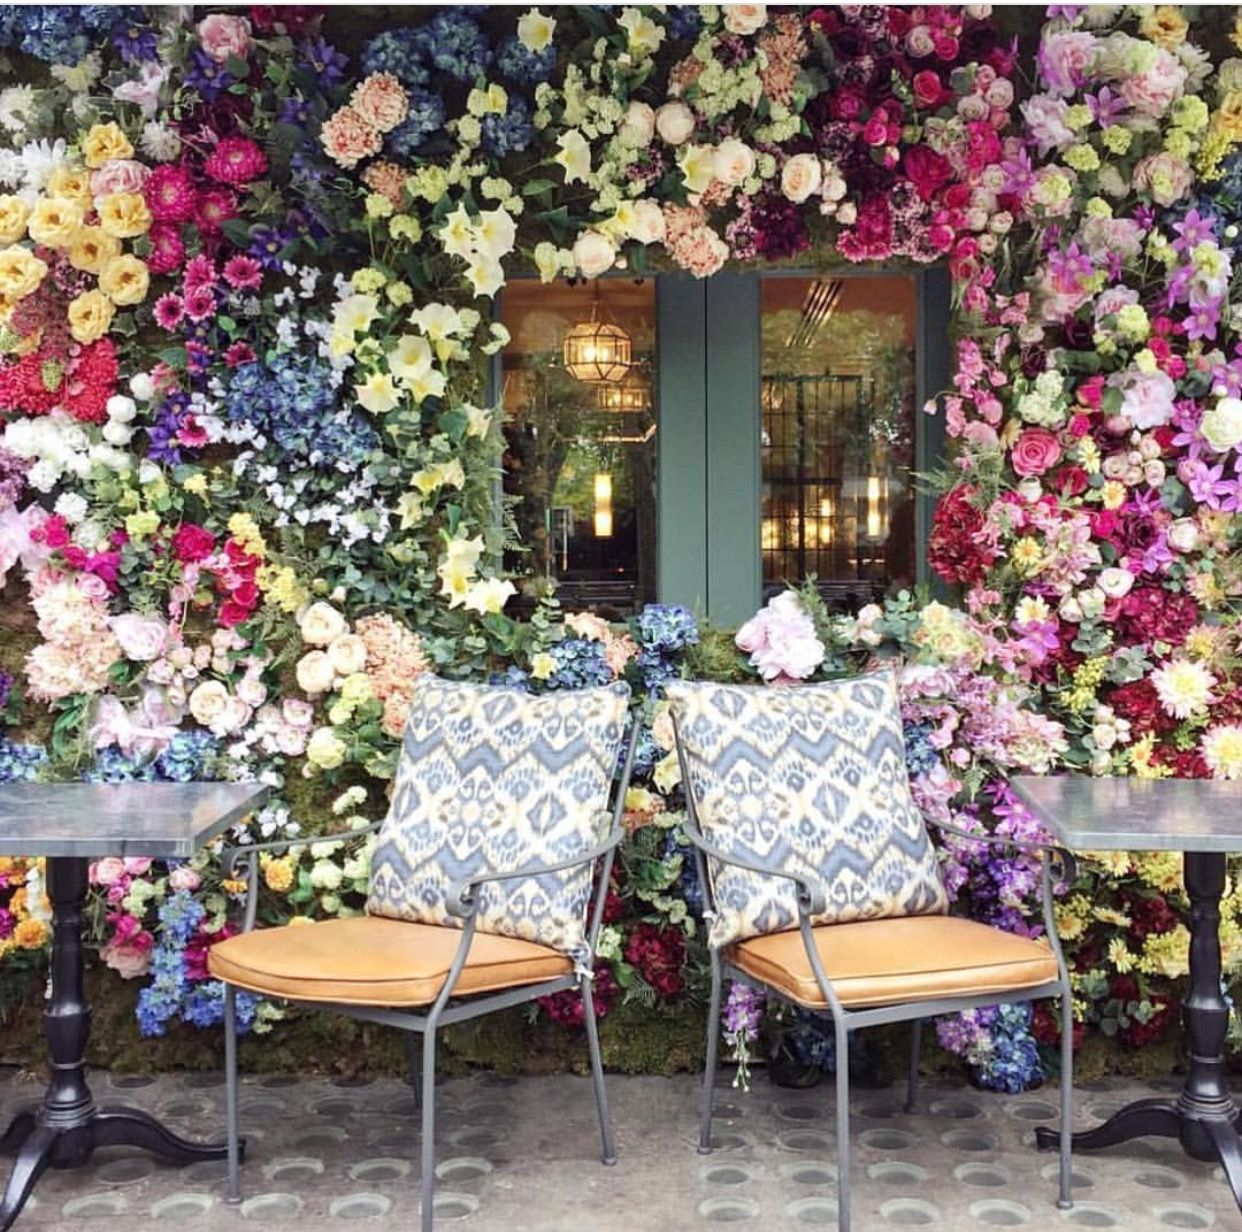 Pin by Suad Habib on Cafes Chelsea garden, The ivy